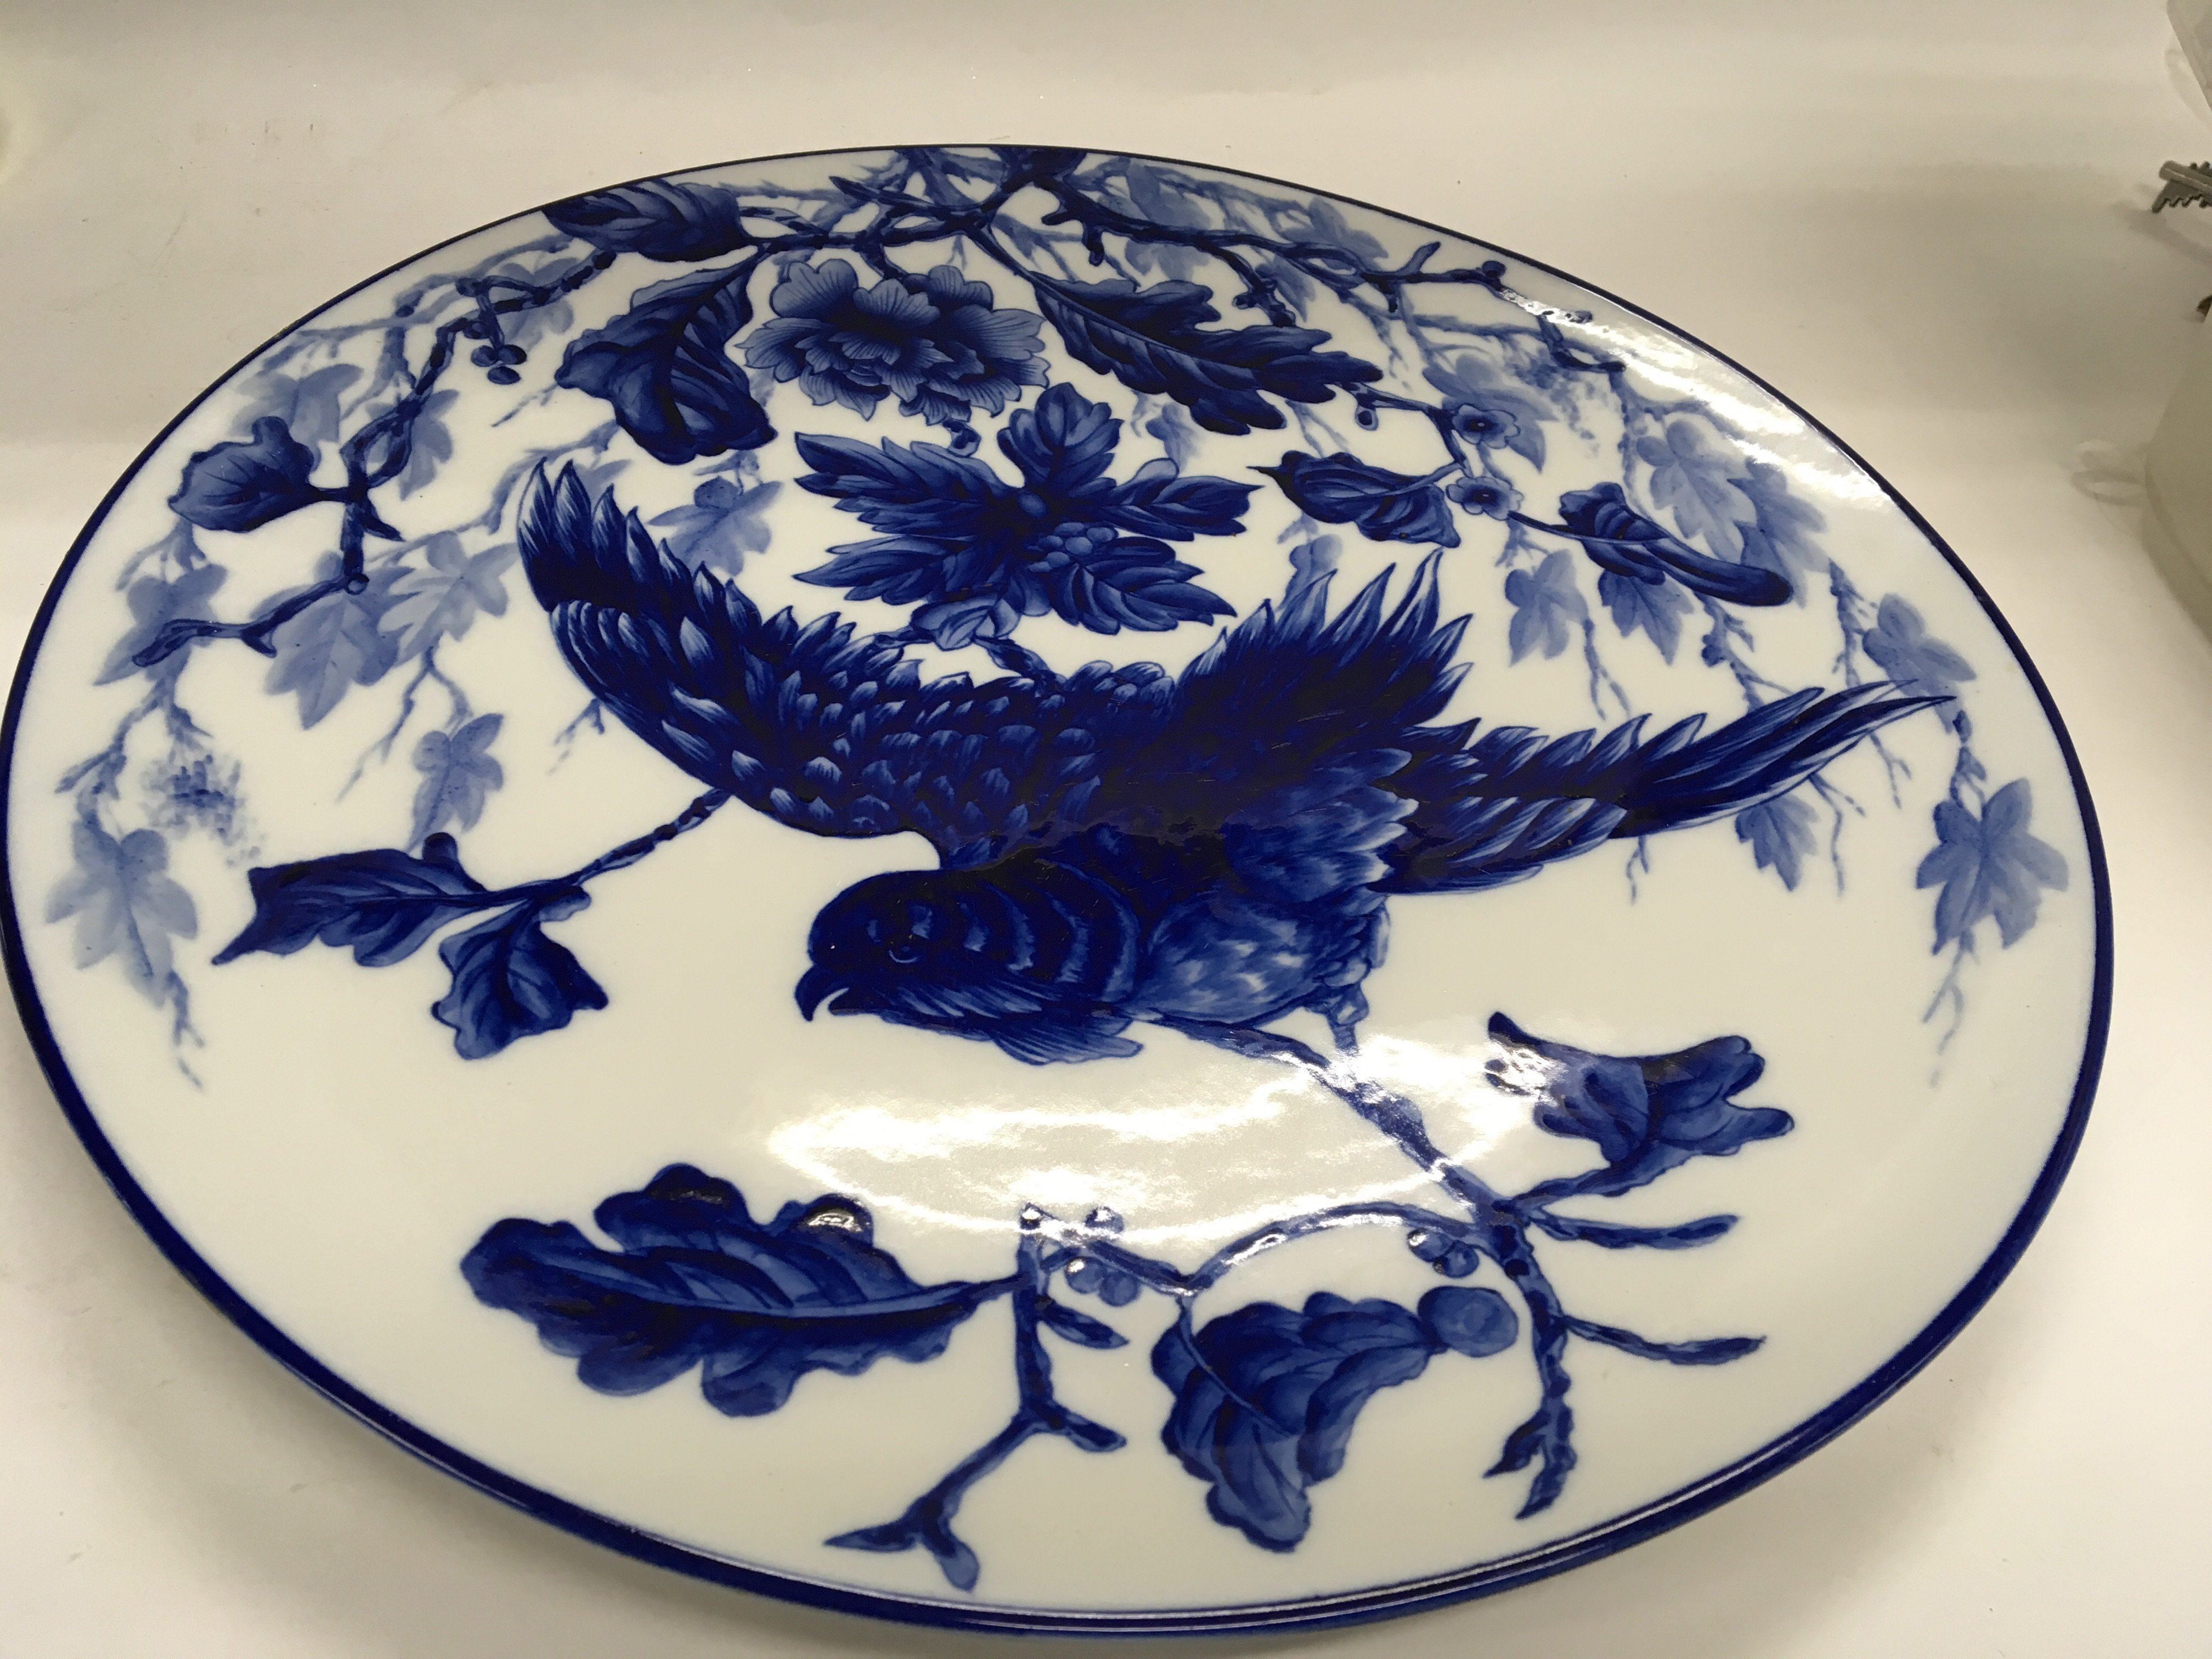 A 19th century Worcester porcelain blue and white